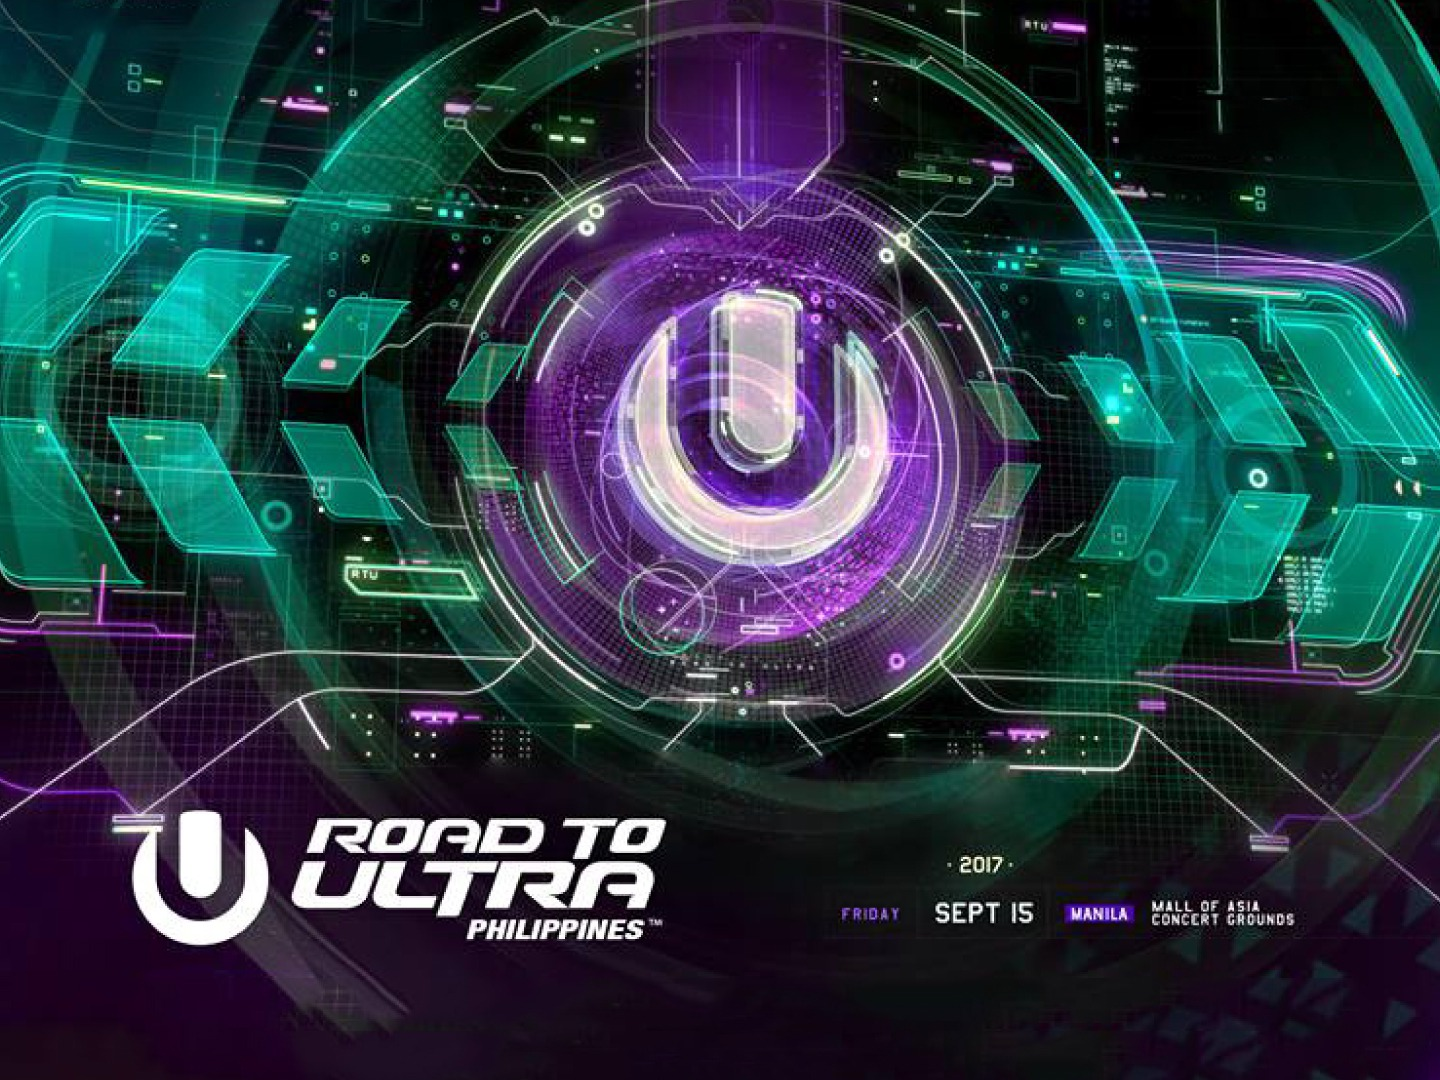 Win Road to Ultra PH Tickets